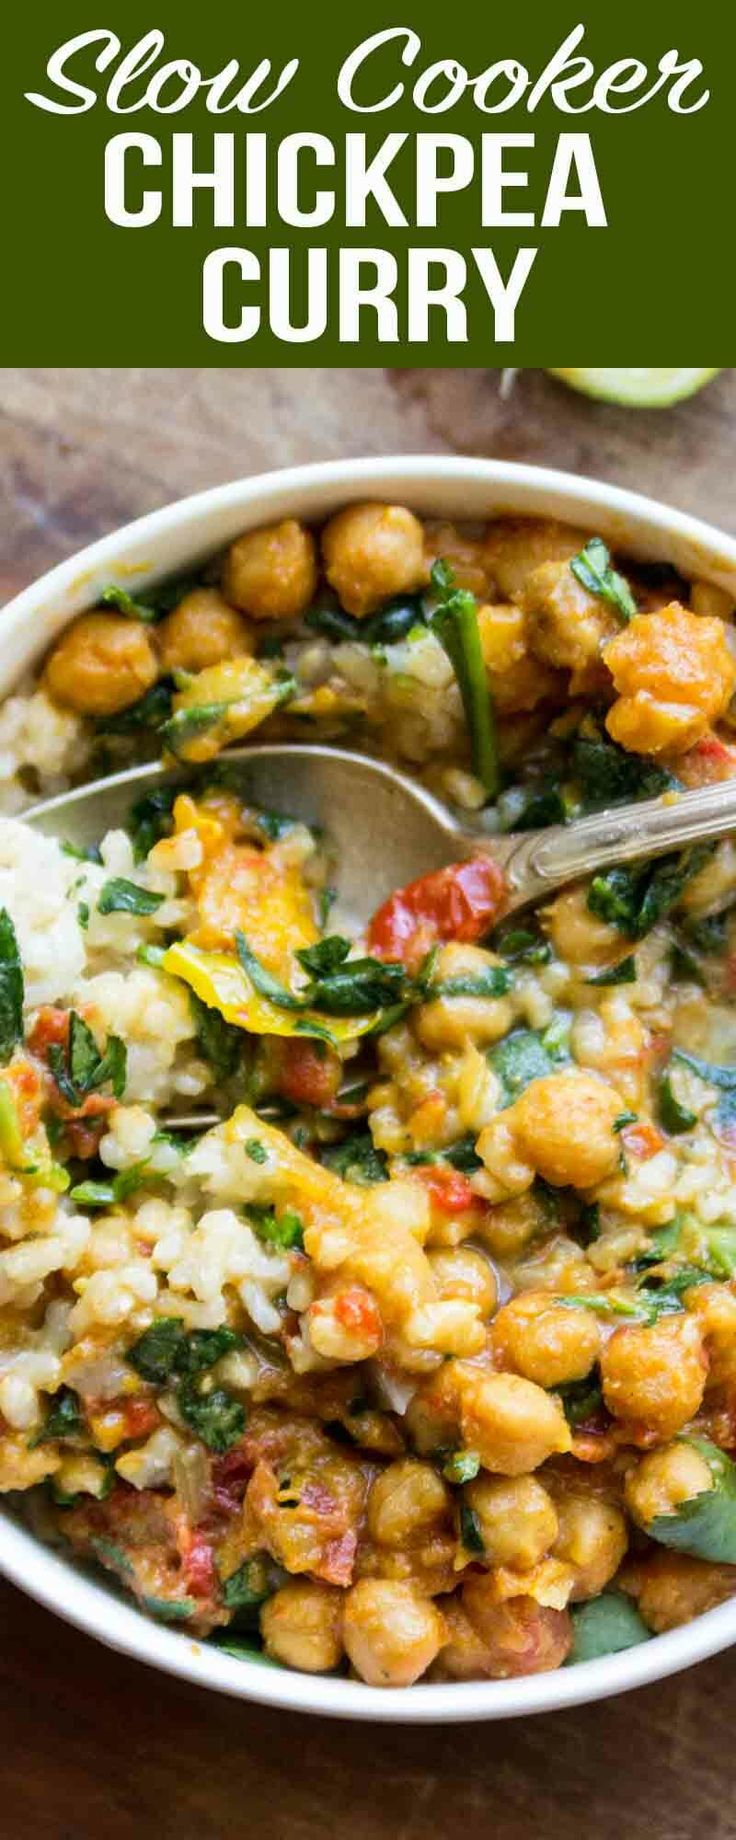 This Slow Cooker Chickpea Curry a set-it-and-forget-it meal. Just pile all the i…